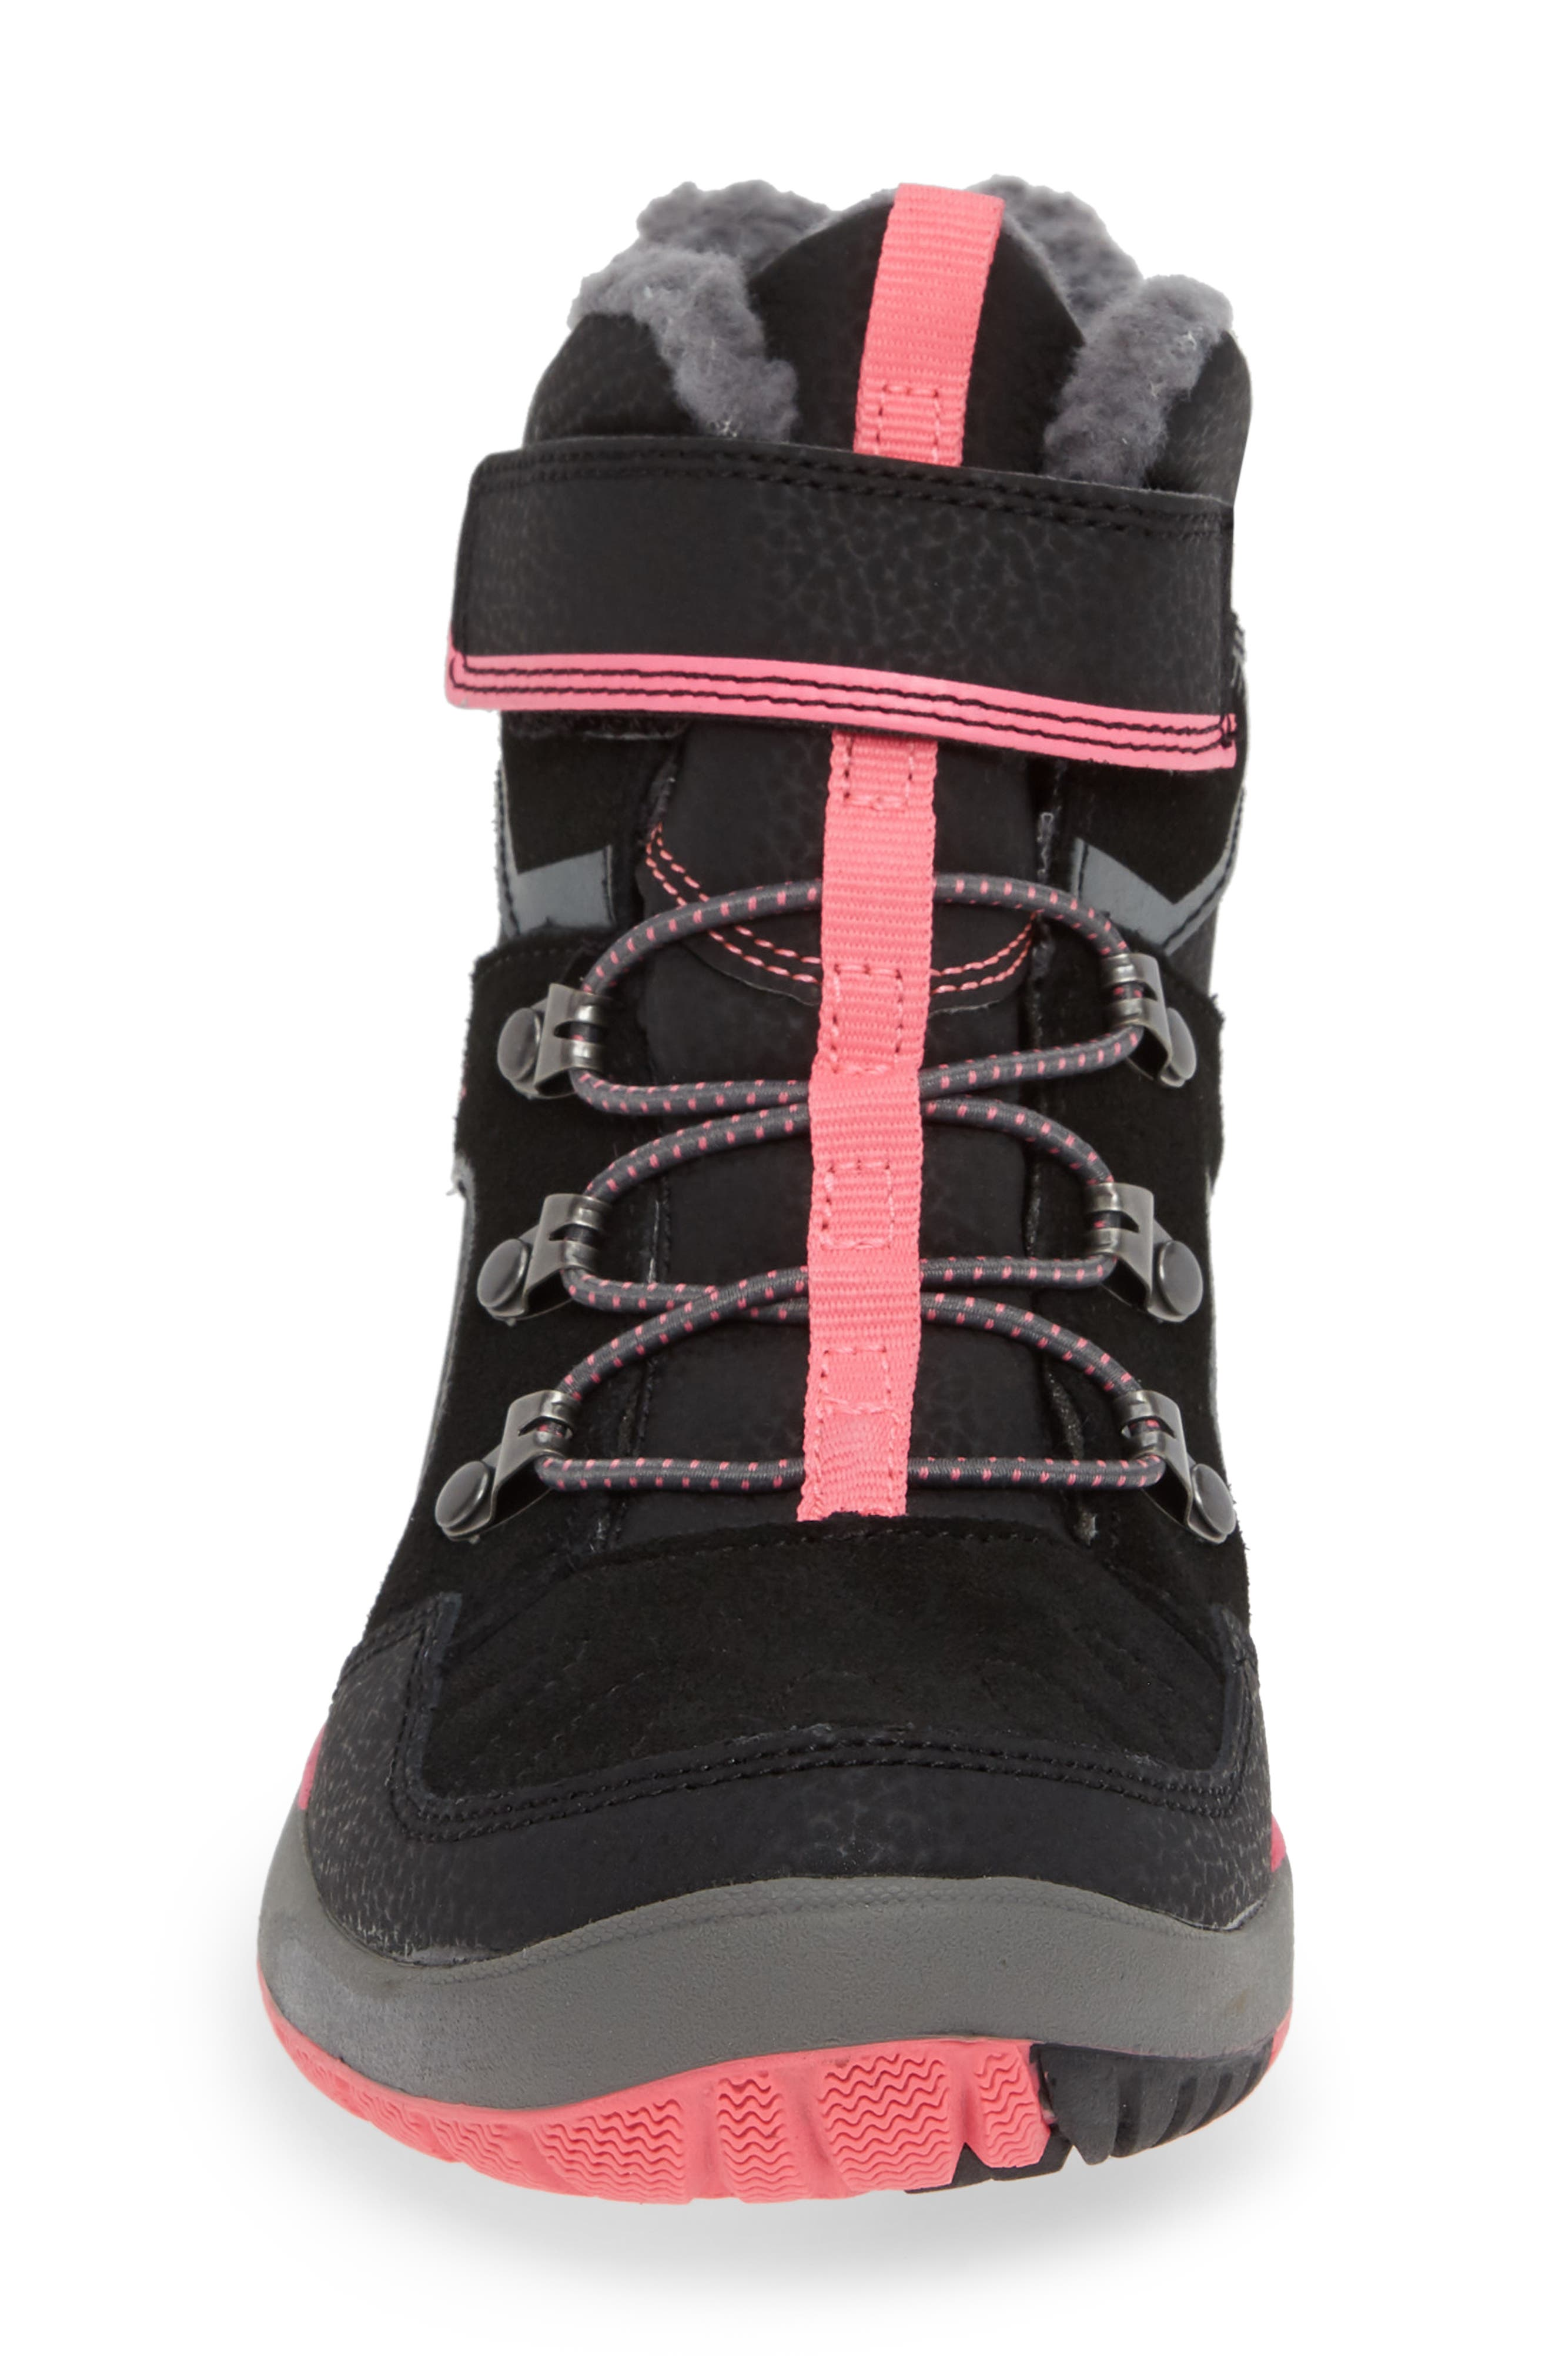 Moab FST Polar Mid Waterproof Insulated Sneaker Boot,                             Alternate thumbnail 4, color,                             BLACK/ PINK